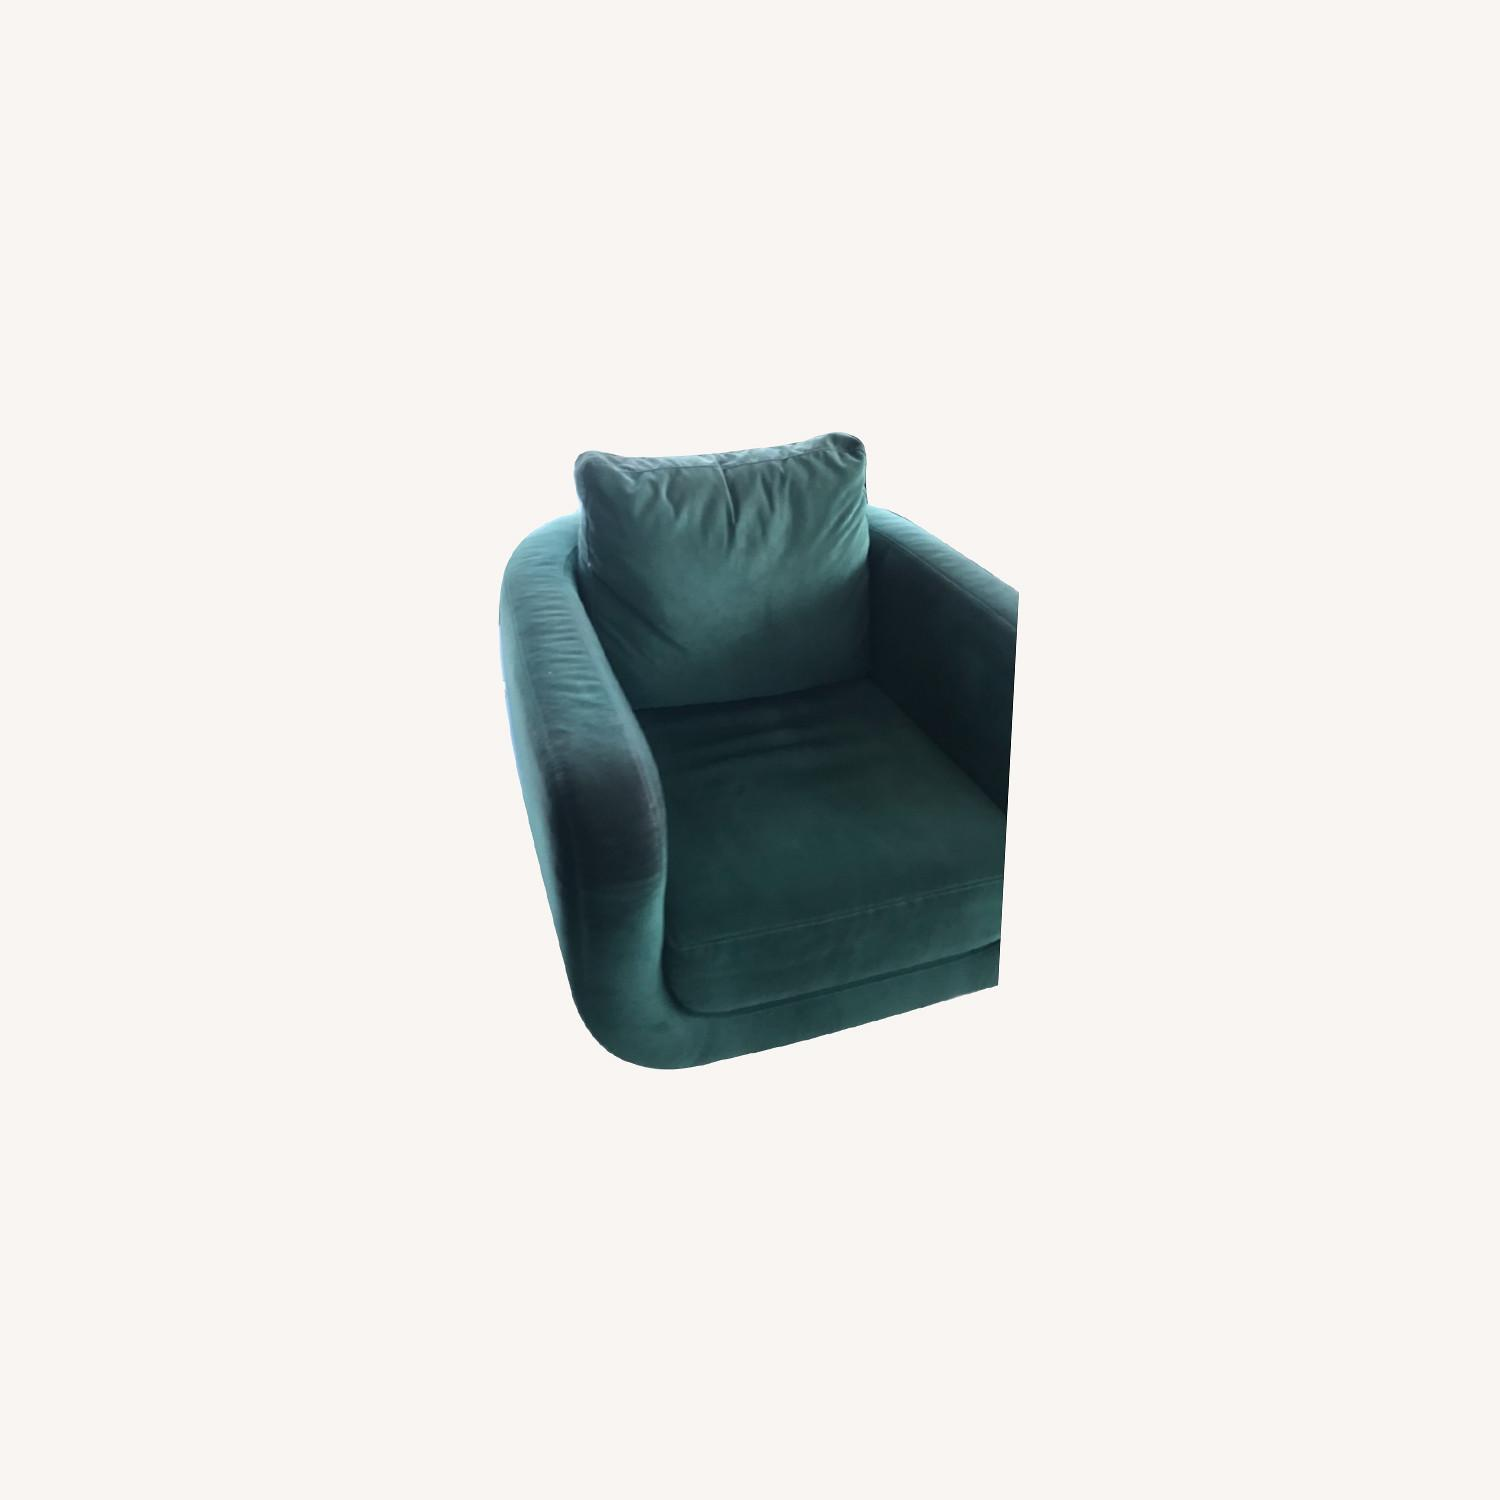 Cliff Young Ltd. Orion Chair- Award-winning Design - image-0